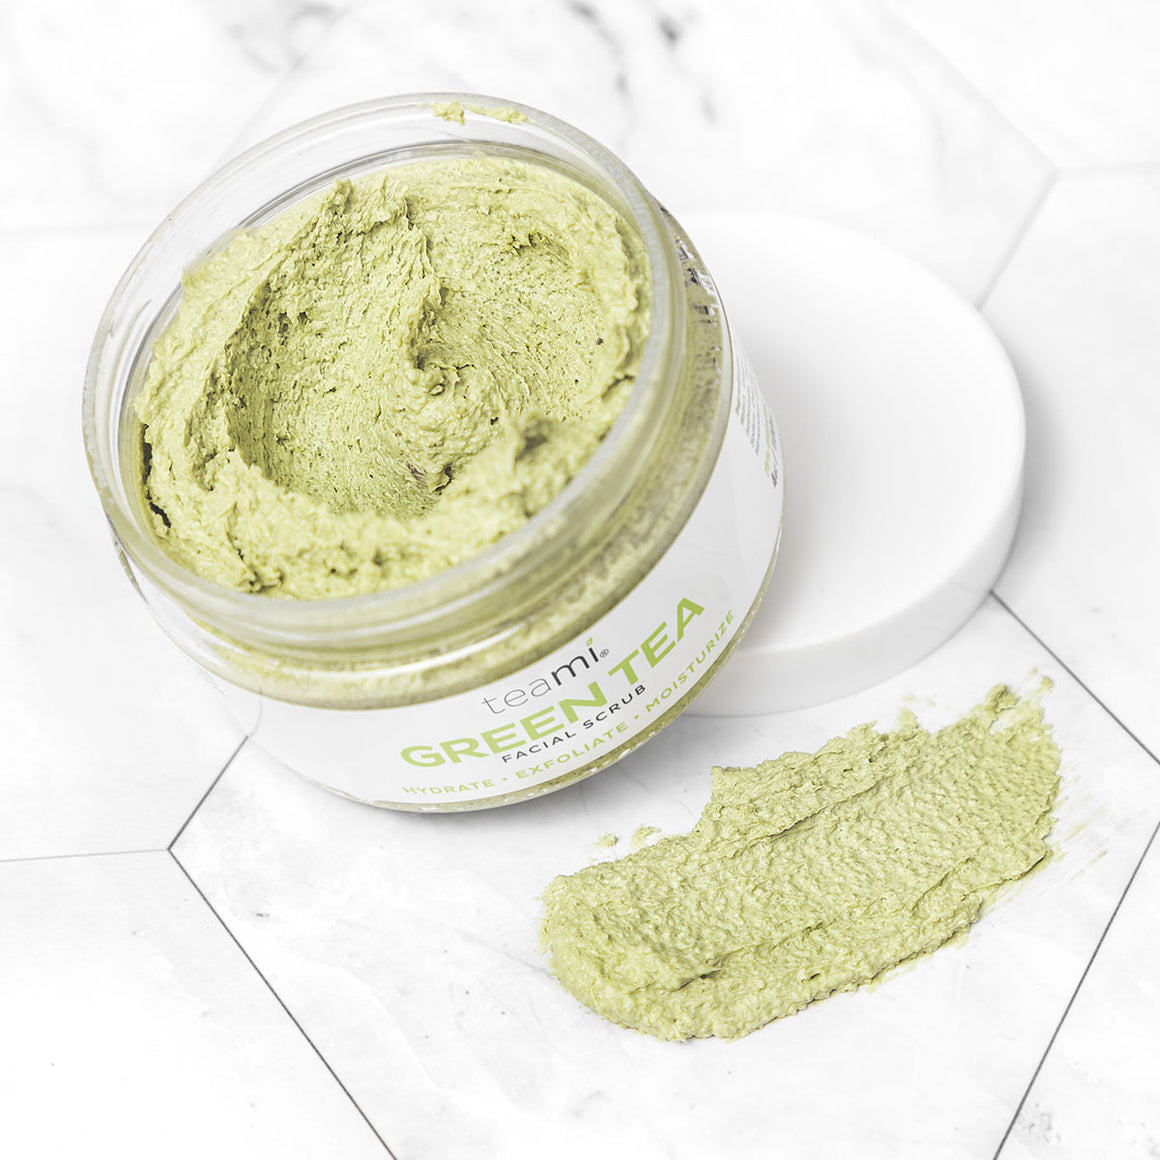 Teami - Green Tea Facial Scrub